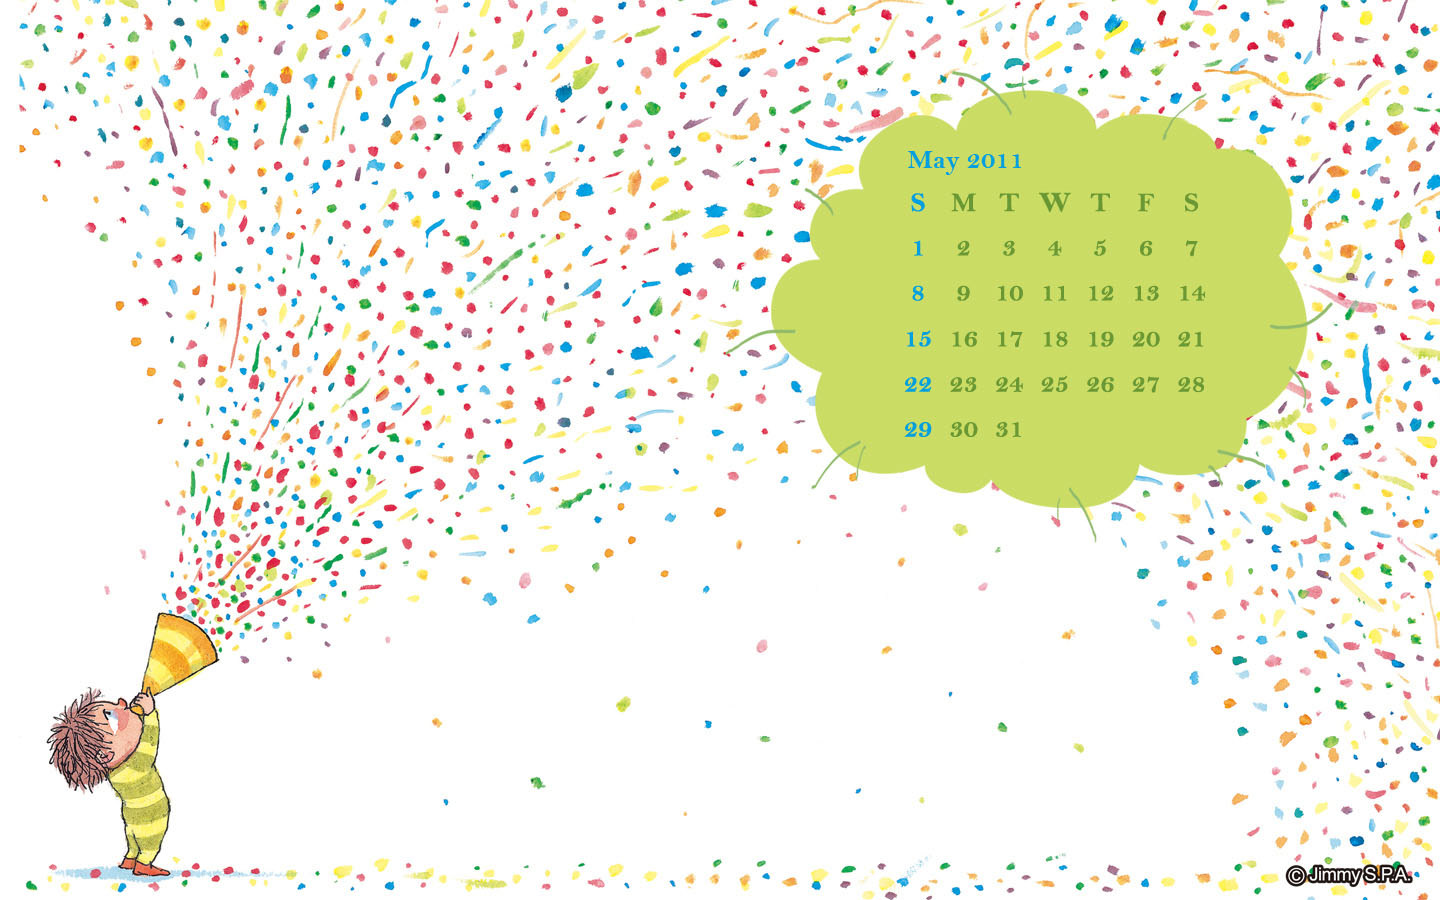 In January Calendar Wallpaper 29597